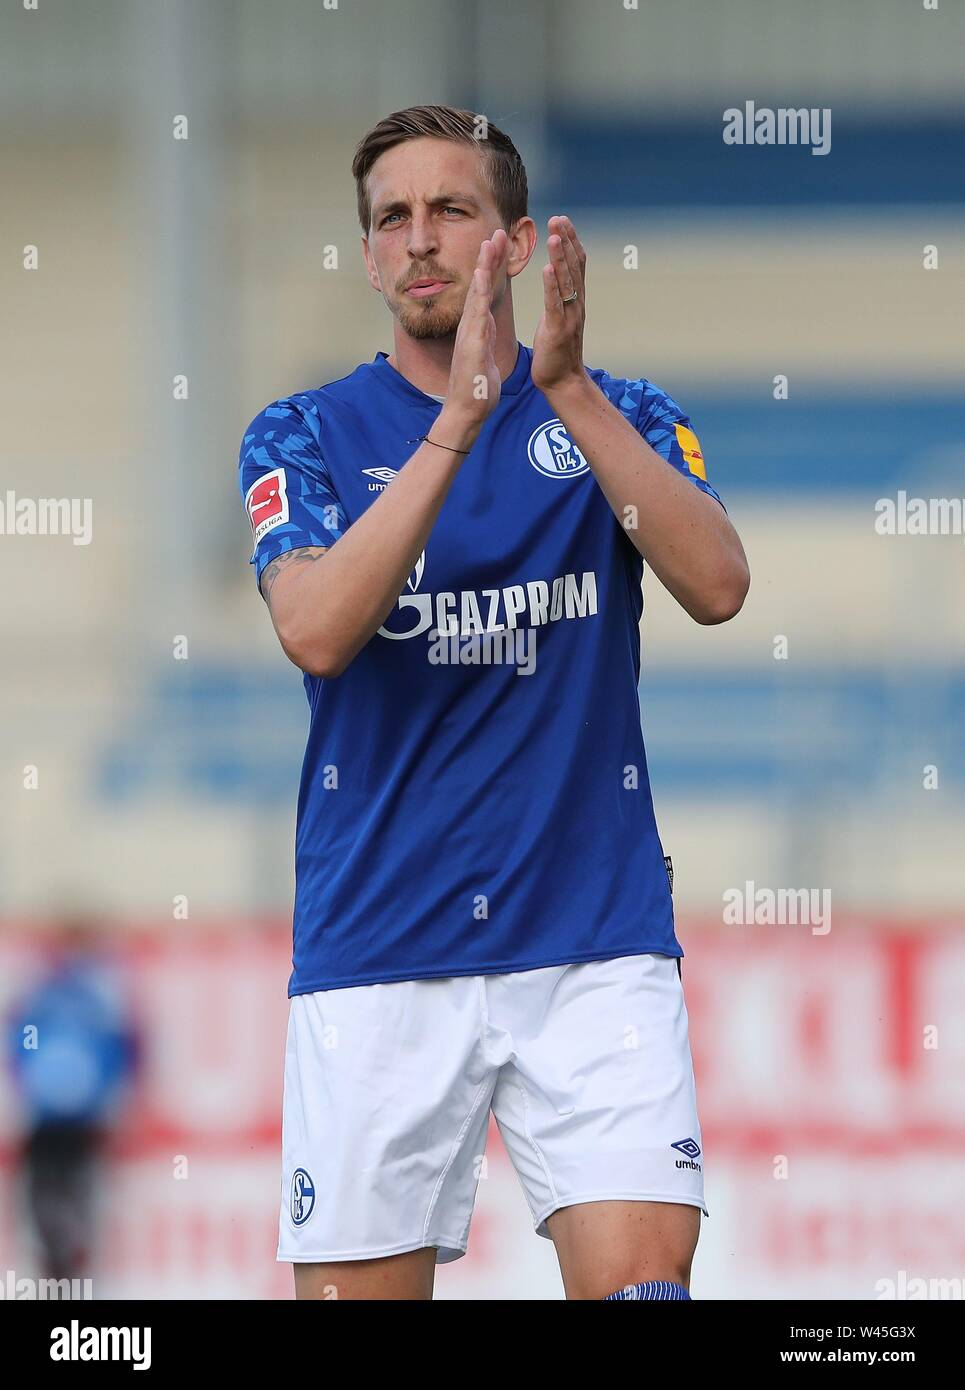 Lotte, Deutschland. 19th July, 2019. firo: 19.07.2019, football, 1.Bundesliga, season 2019/2020, friendly match, FC Schalke 04 - Norwich City Bastian OCZIPKA, Schalke, applause | usage worldwide Credit: dpa/Alamy Live News - Stock Image